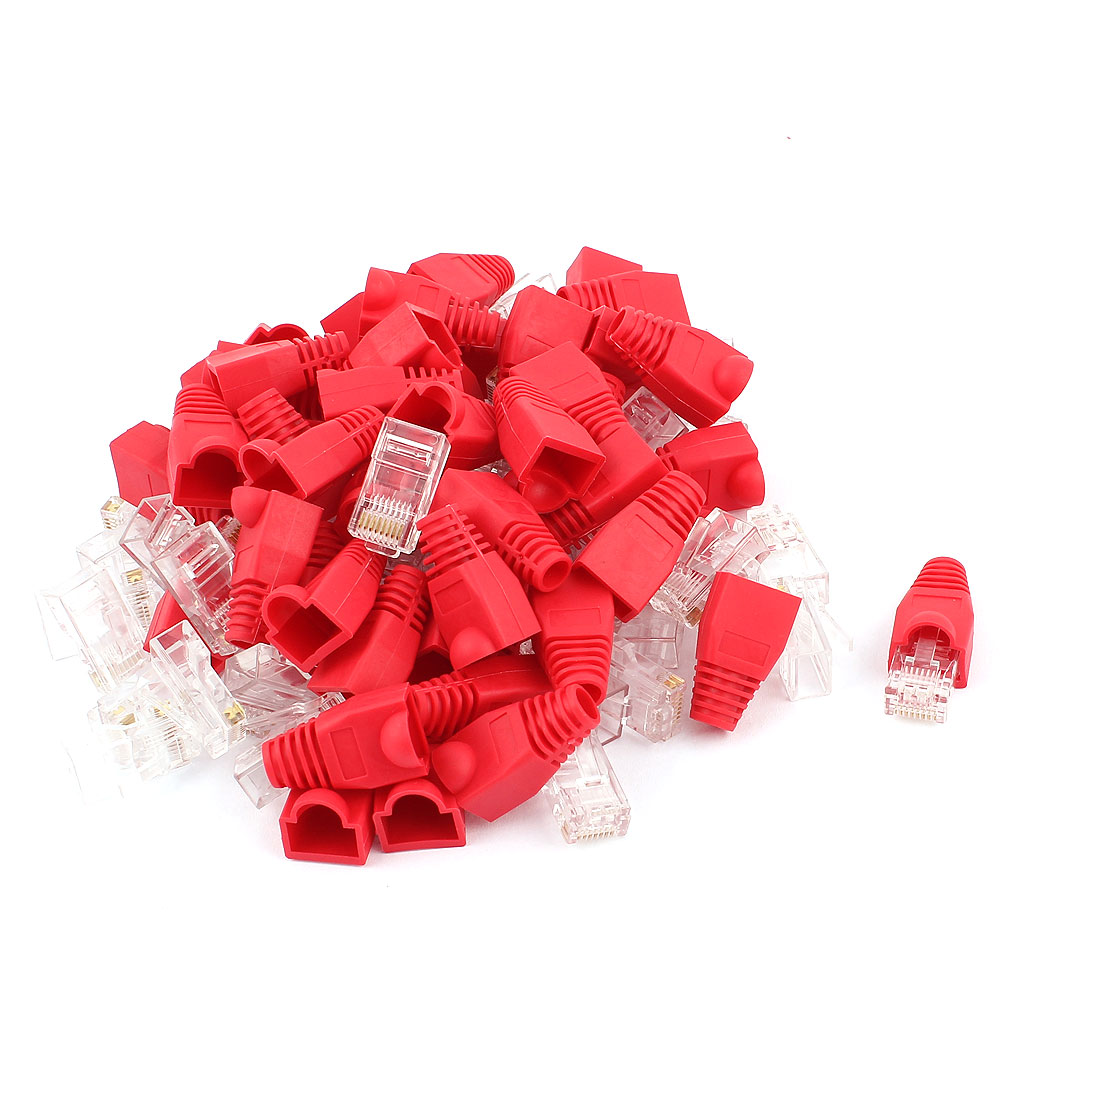 50pcs 8P8C Cat6 Patch RJ45 Head Modular Network Jack End Adapter w Boot Protector Red